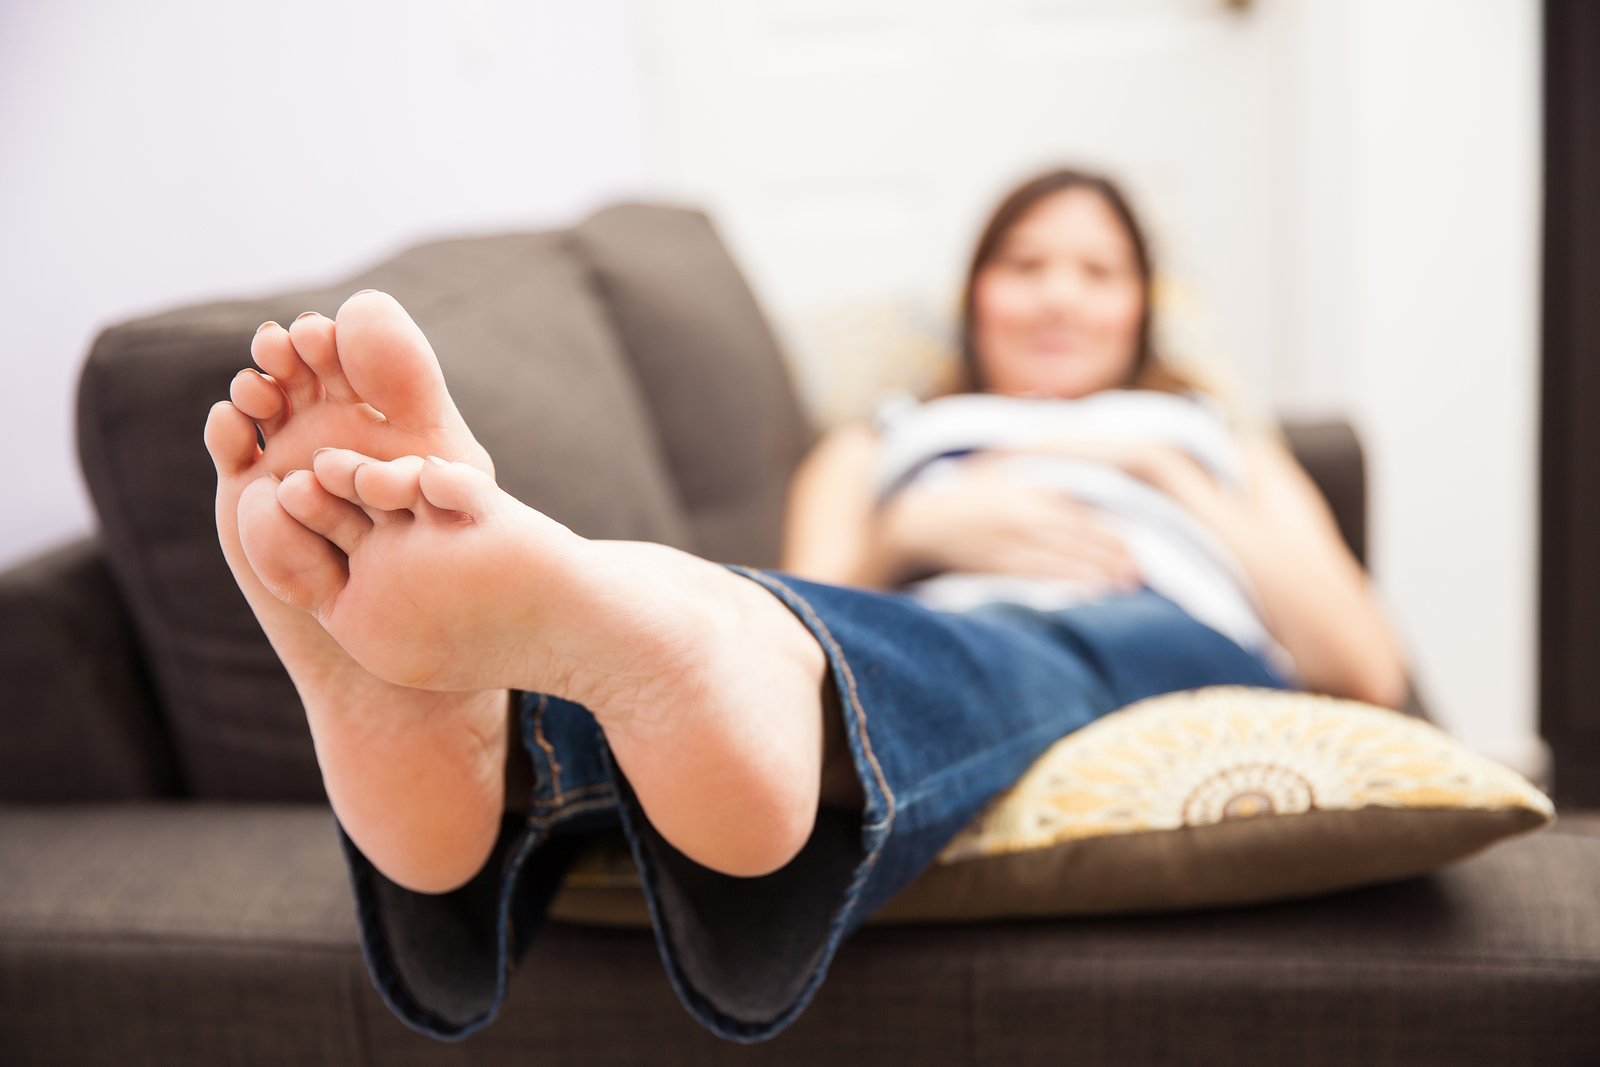 Forum on this topic: The Trick To Making Your Feet Happy, the-trick-to-making-your-feet-happy/